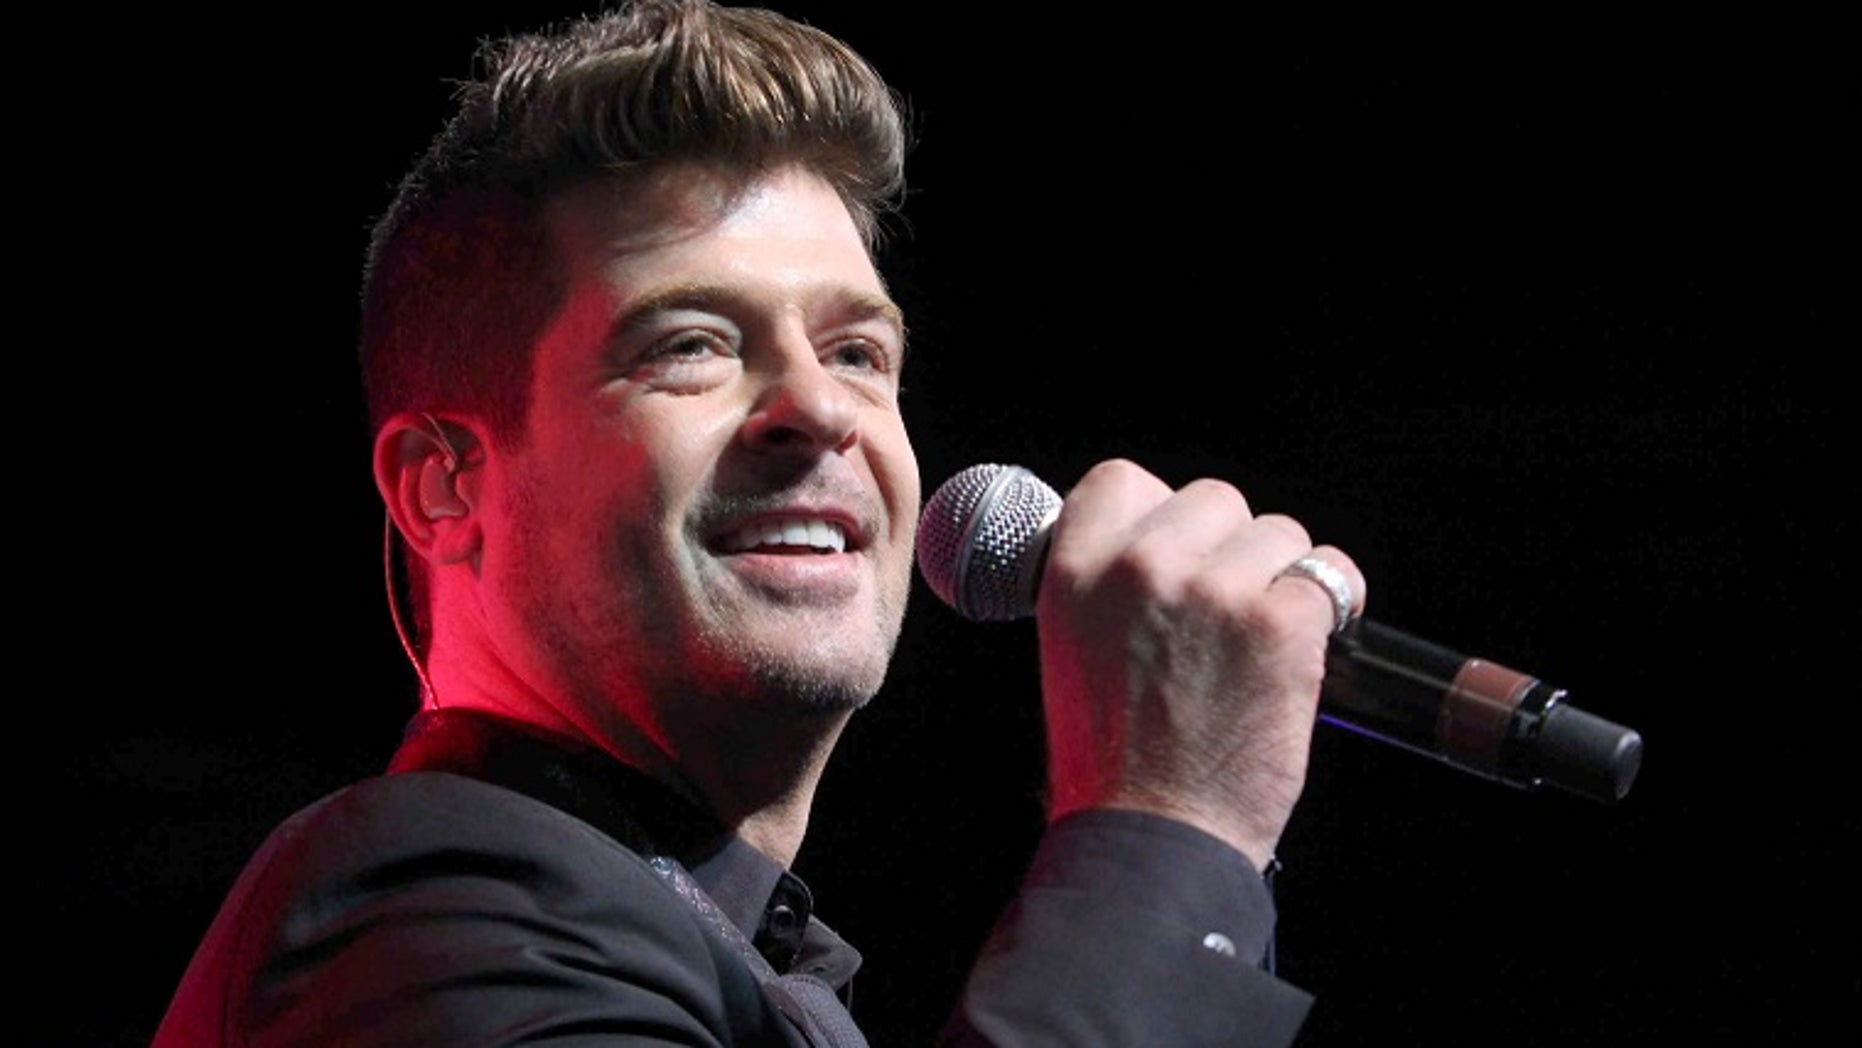 Robin Thicke and his girlfriend, April Love Geary, announced on Instagram Thursday that she is expecting a baby with the singer.